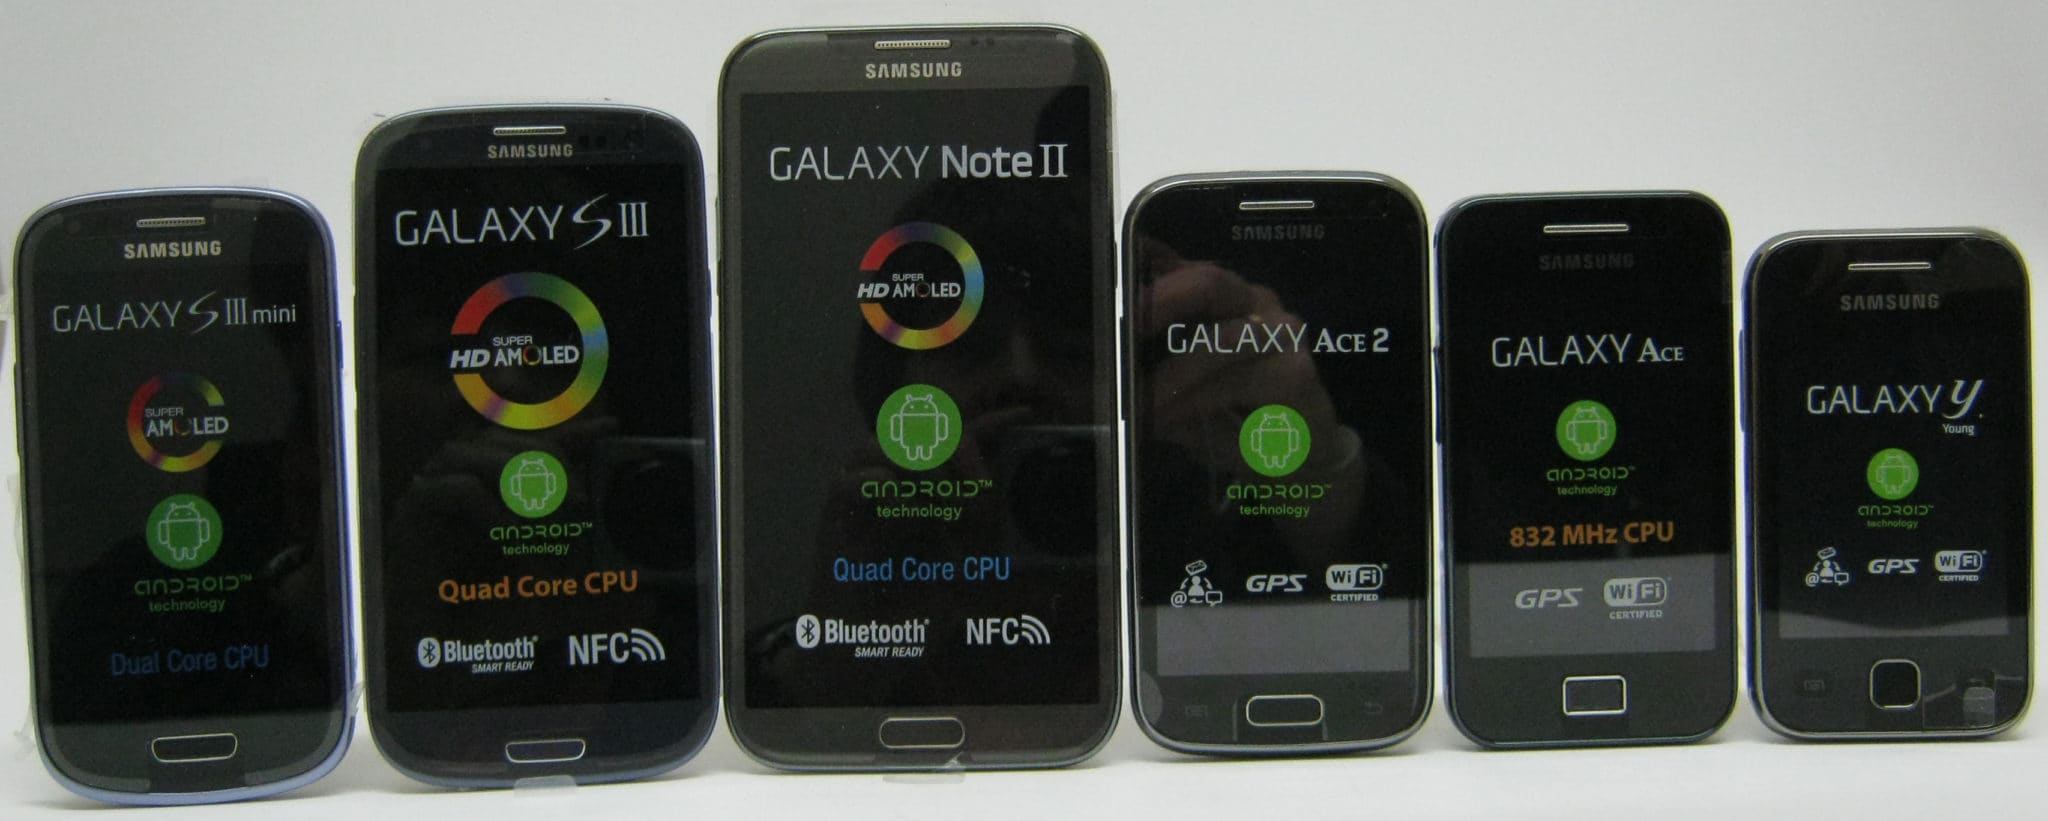 Mobile Matters: The Galaxy Mobile Phone Family